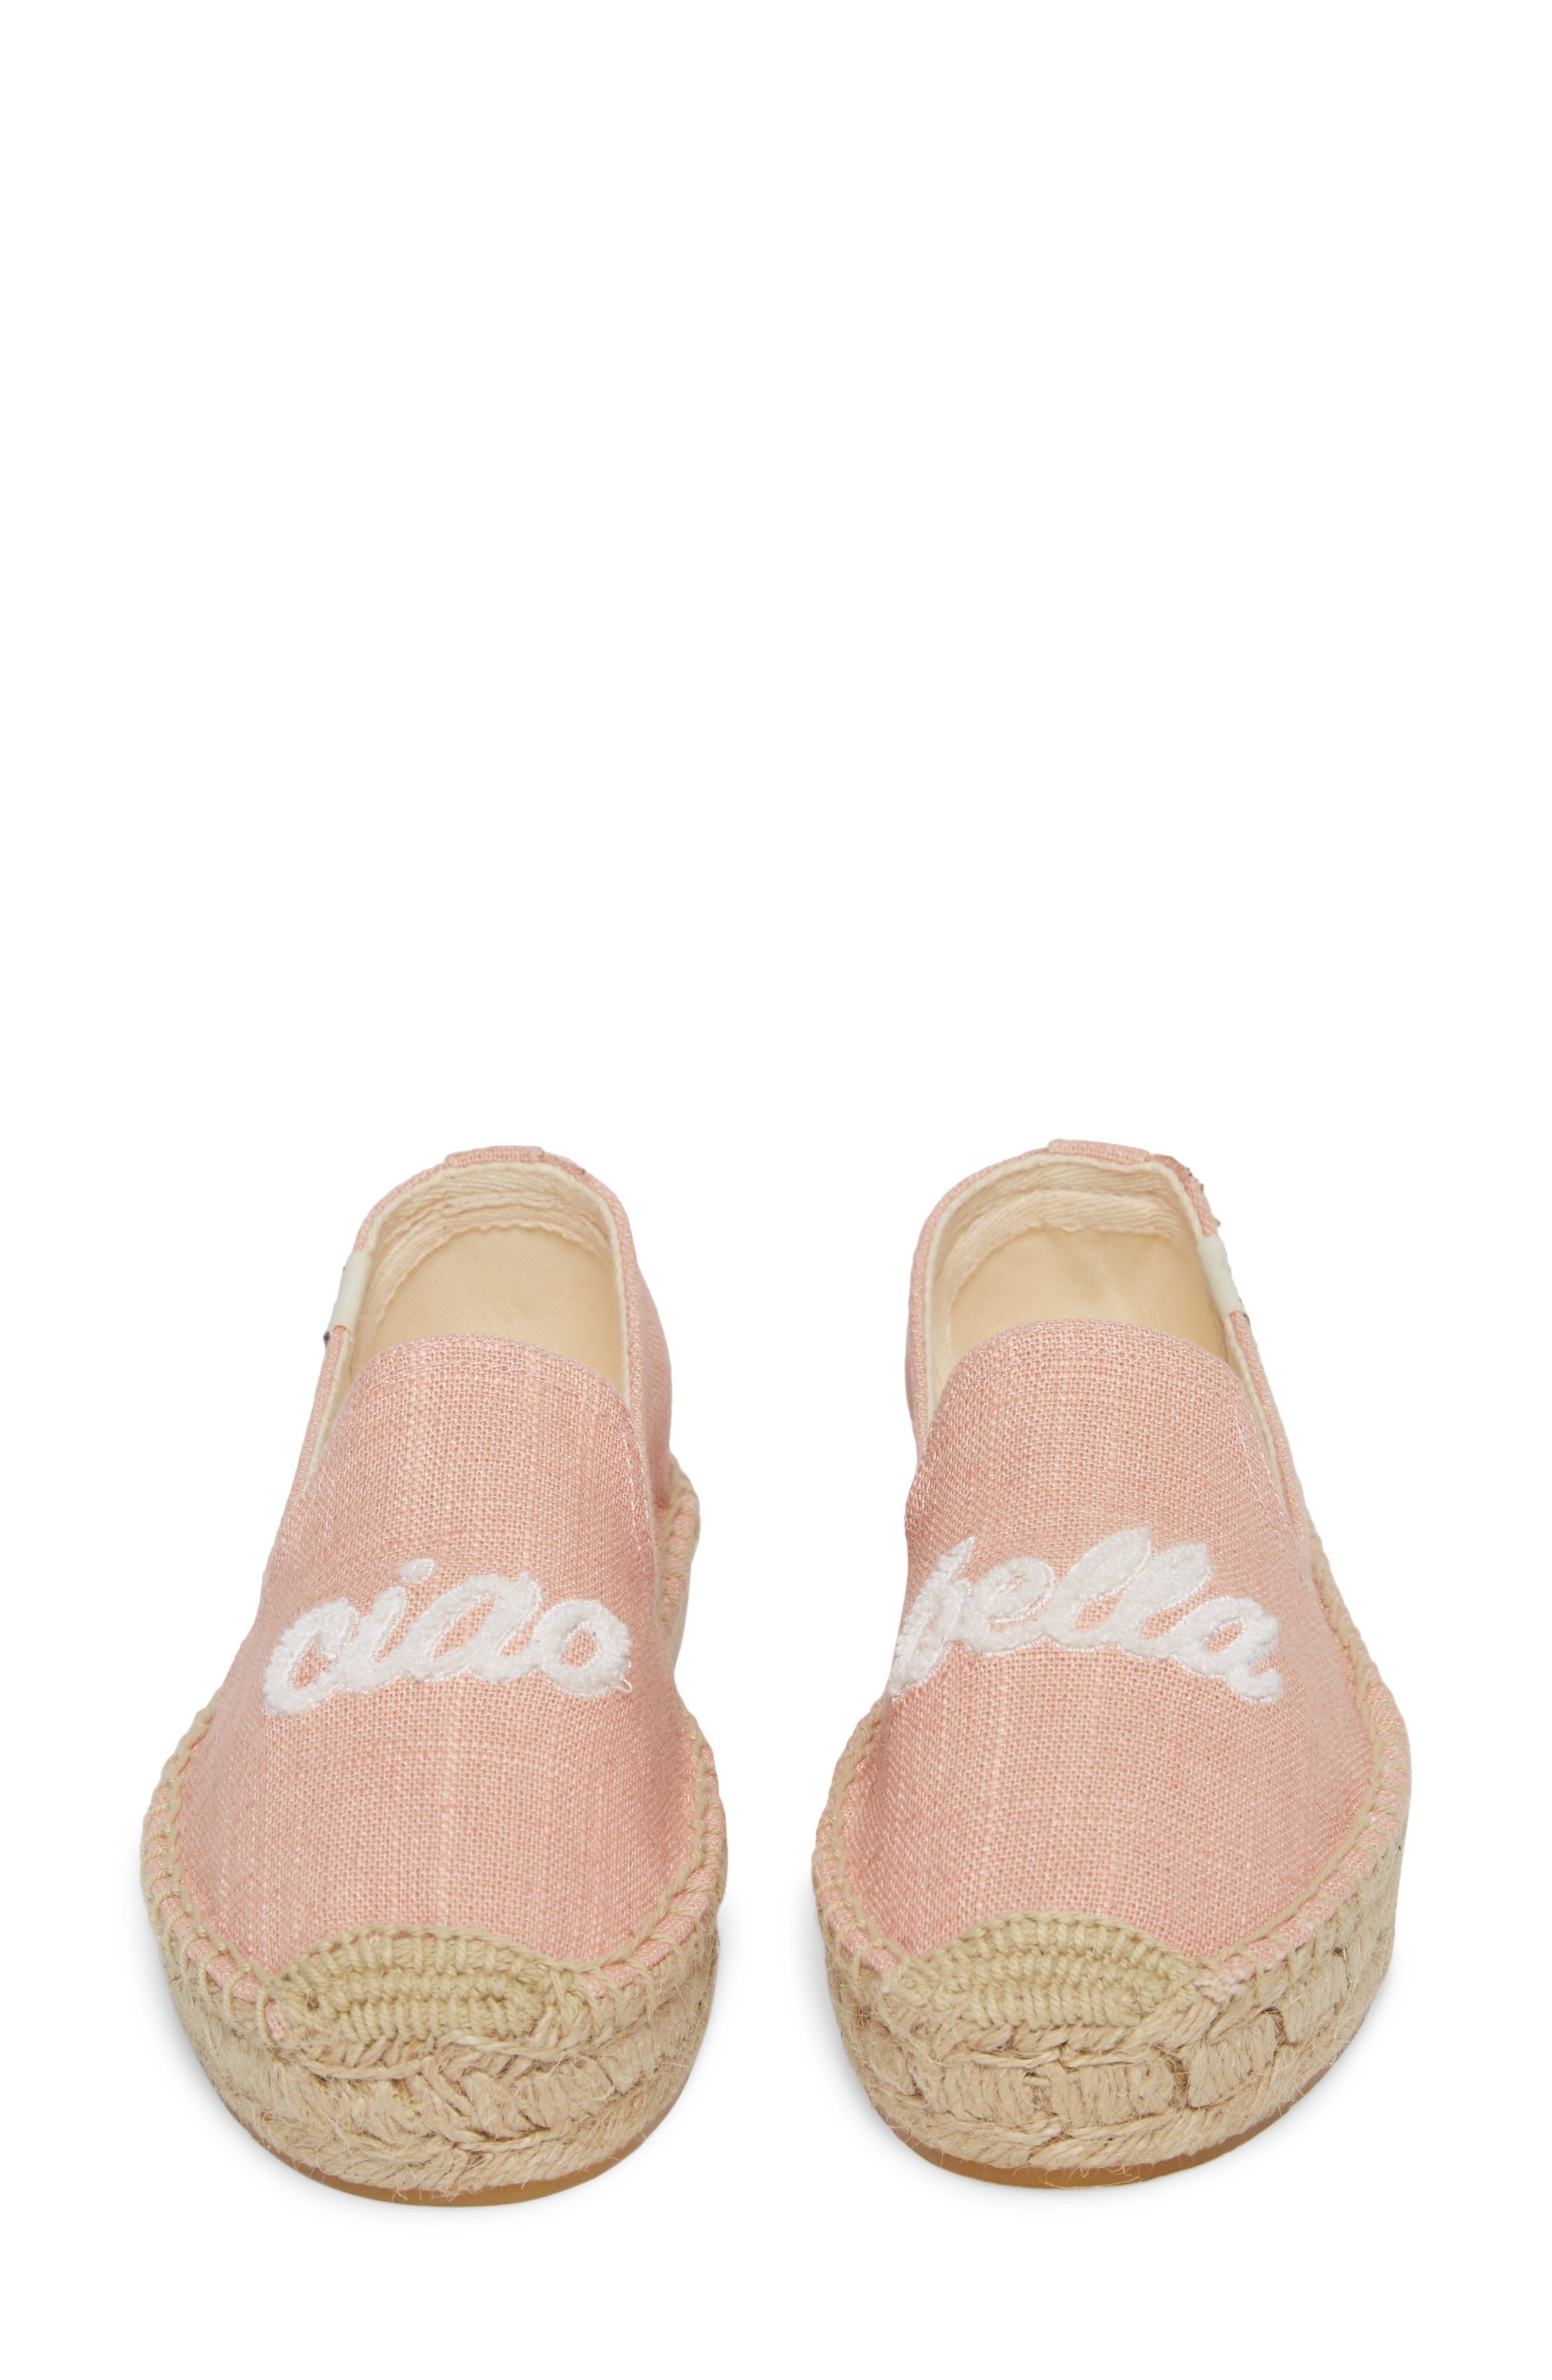 SOLUDOS, Ciao Bella Espadrille Flat, Alternate thumbnail 5, color, DUSTY ROSE FABRIC